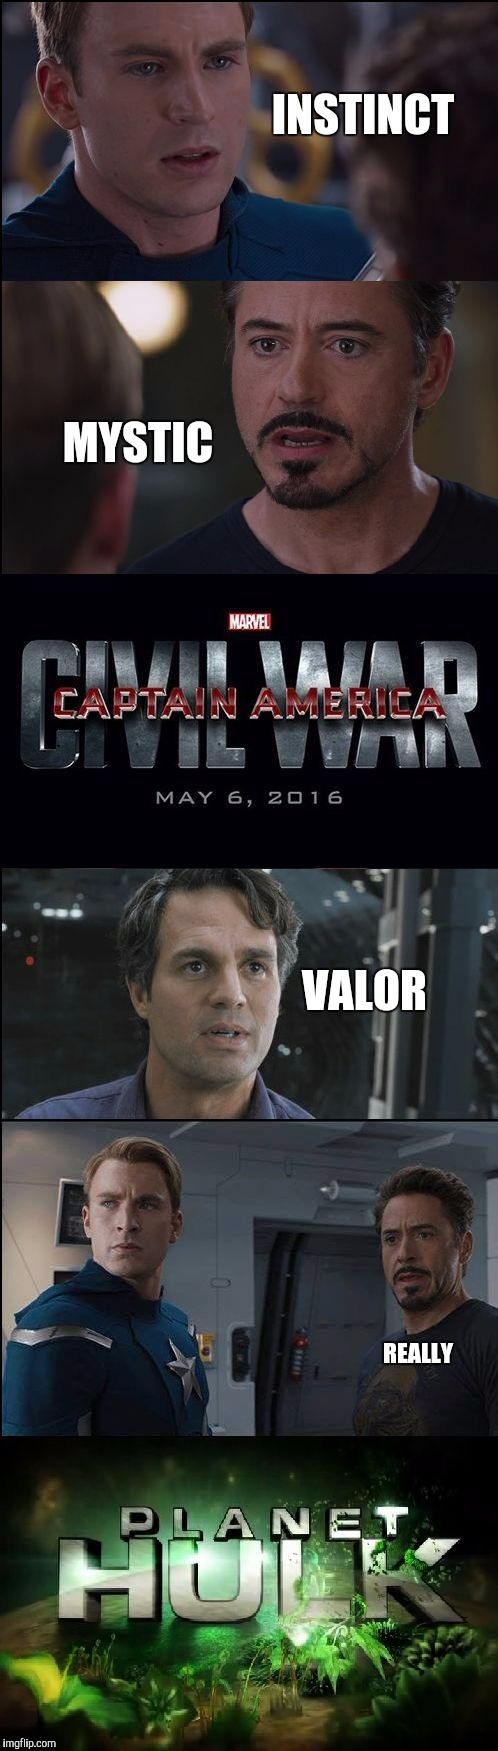 I myself am with Bruce Banner over here. Team Valor! :D | INSTINCT MYSTIC VALOR REALLY | image tagged in civil war/planet hulk,memes,pokemon go,team valor,team mystic,team instinct | made w/ Imgflip meme maker